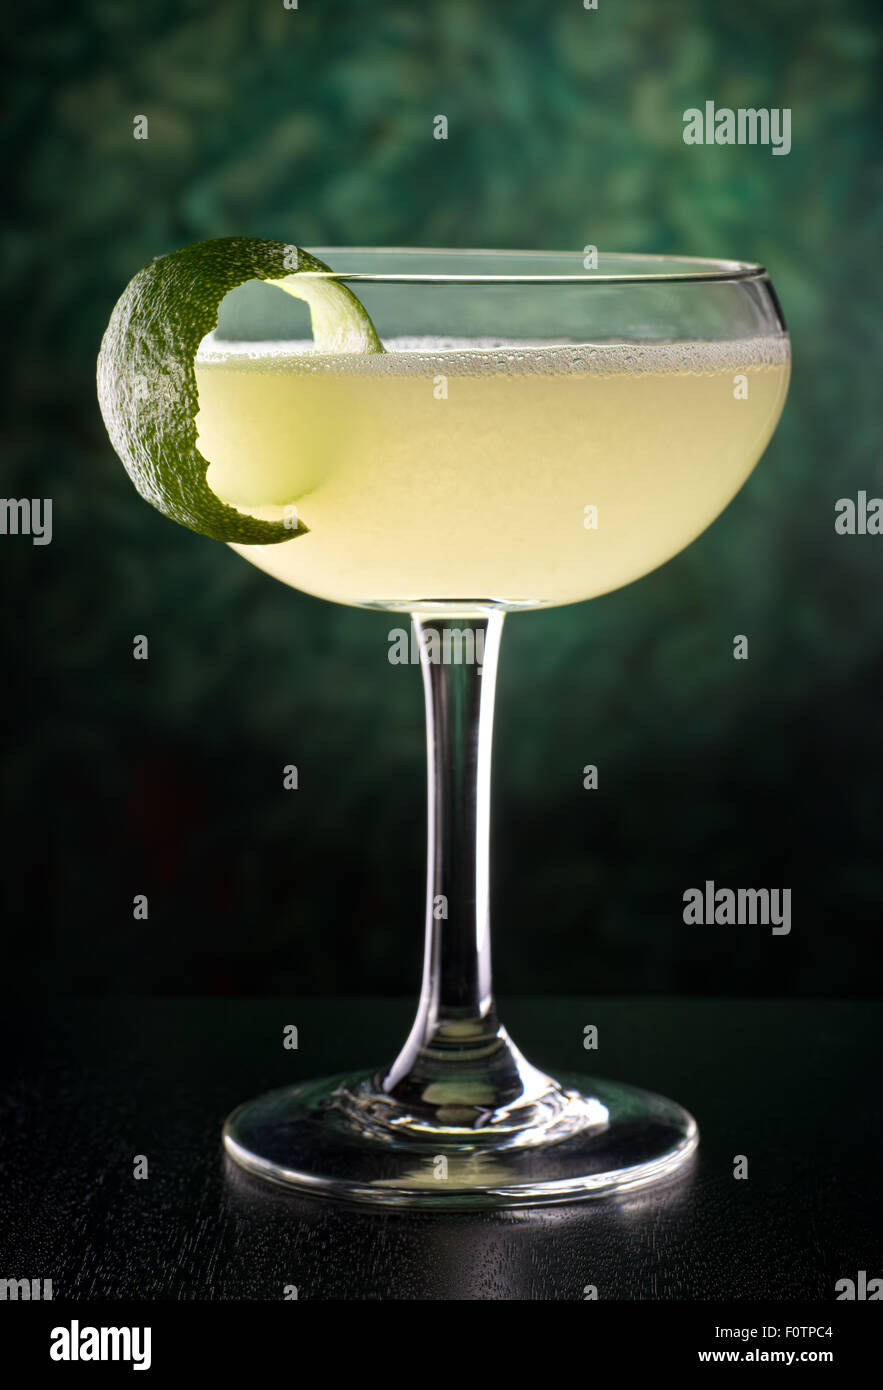 A delicious classic style daiquiri with rum, lime juice, and sugar. - Stock Image